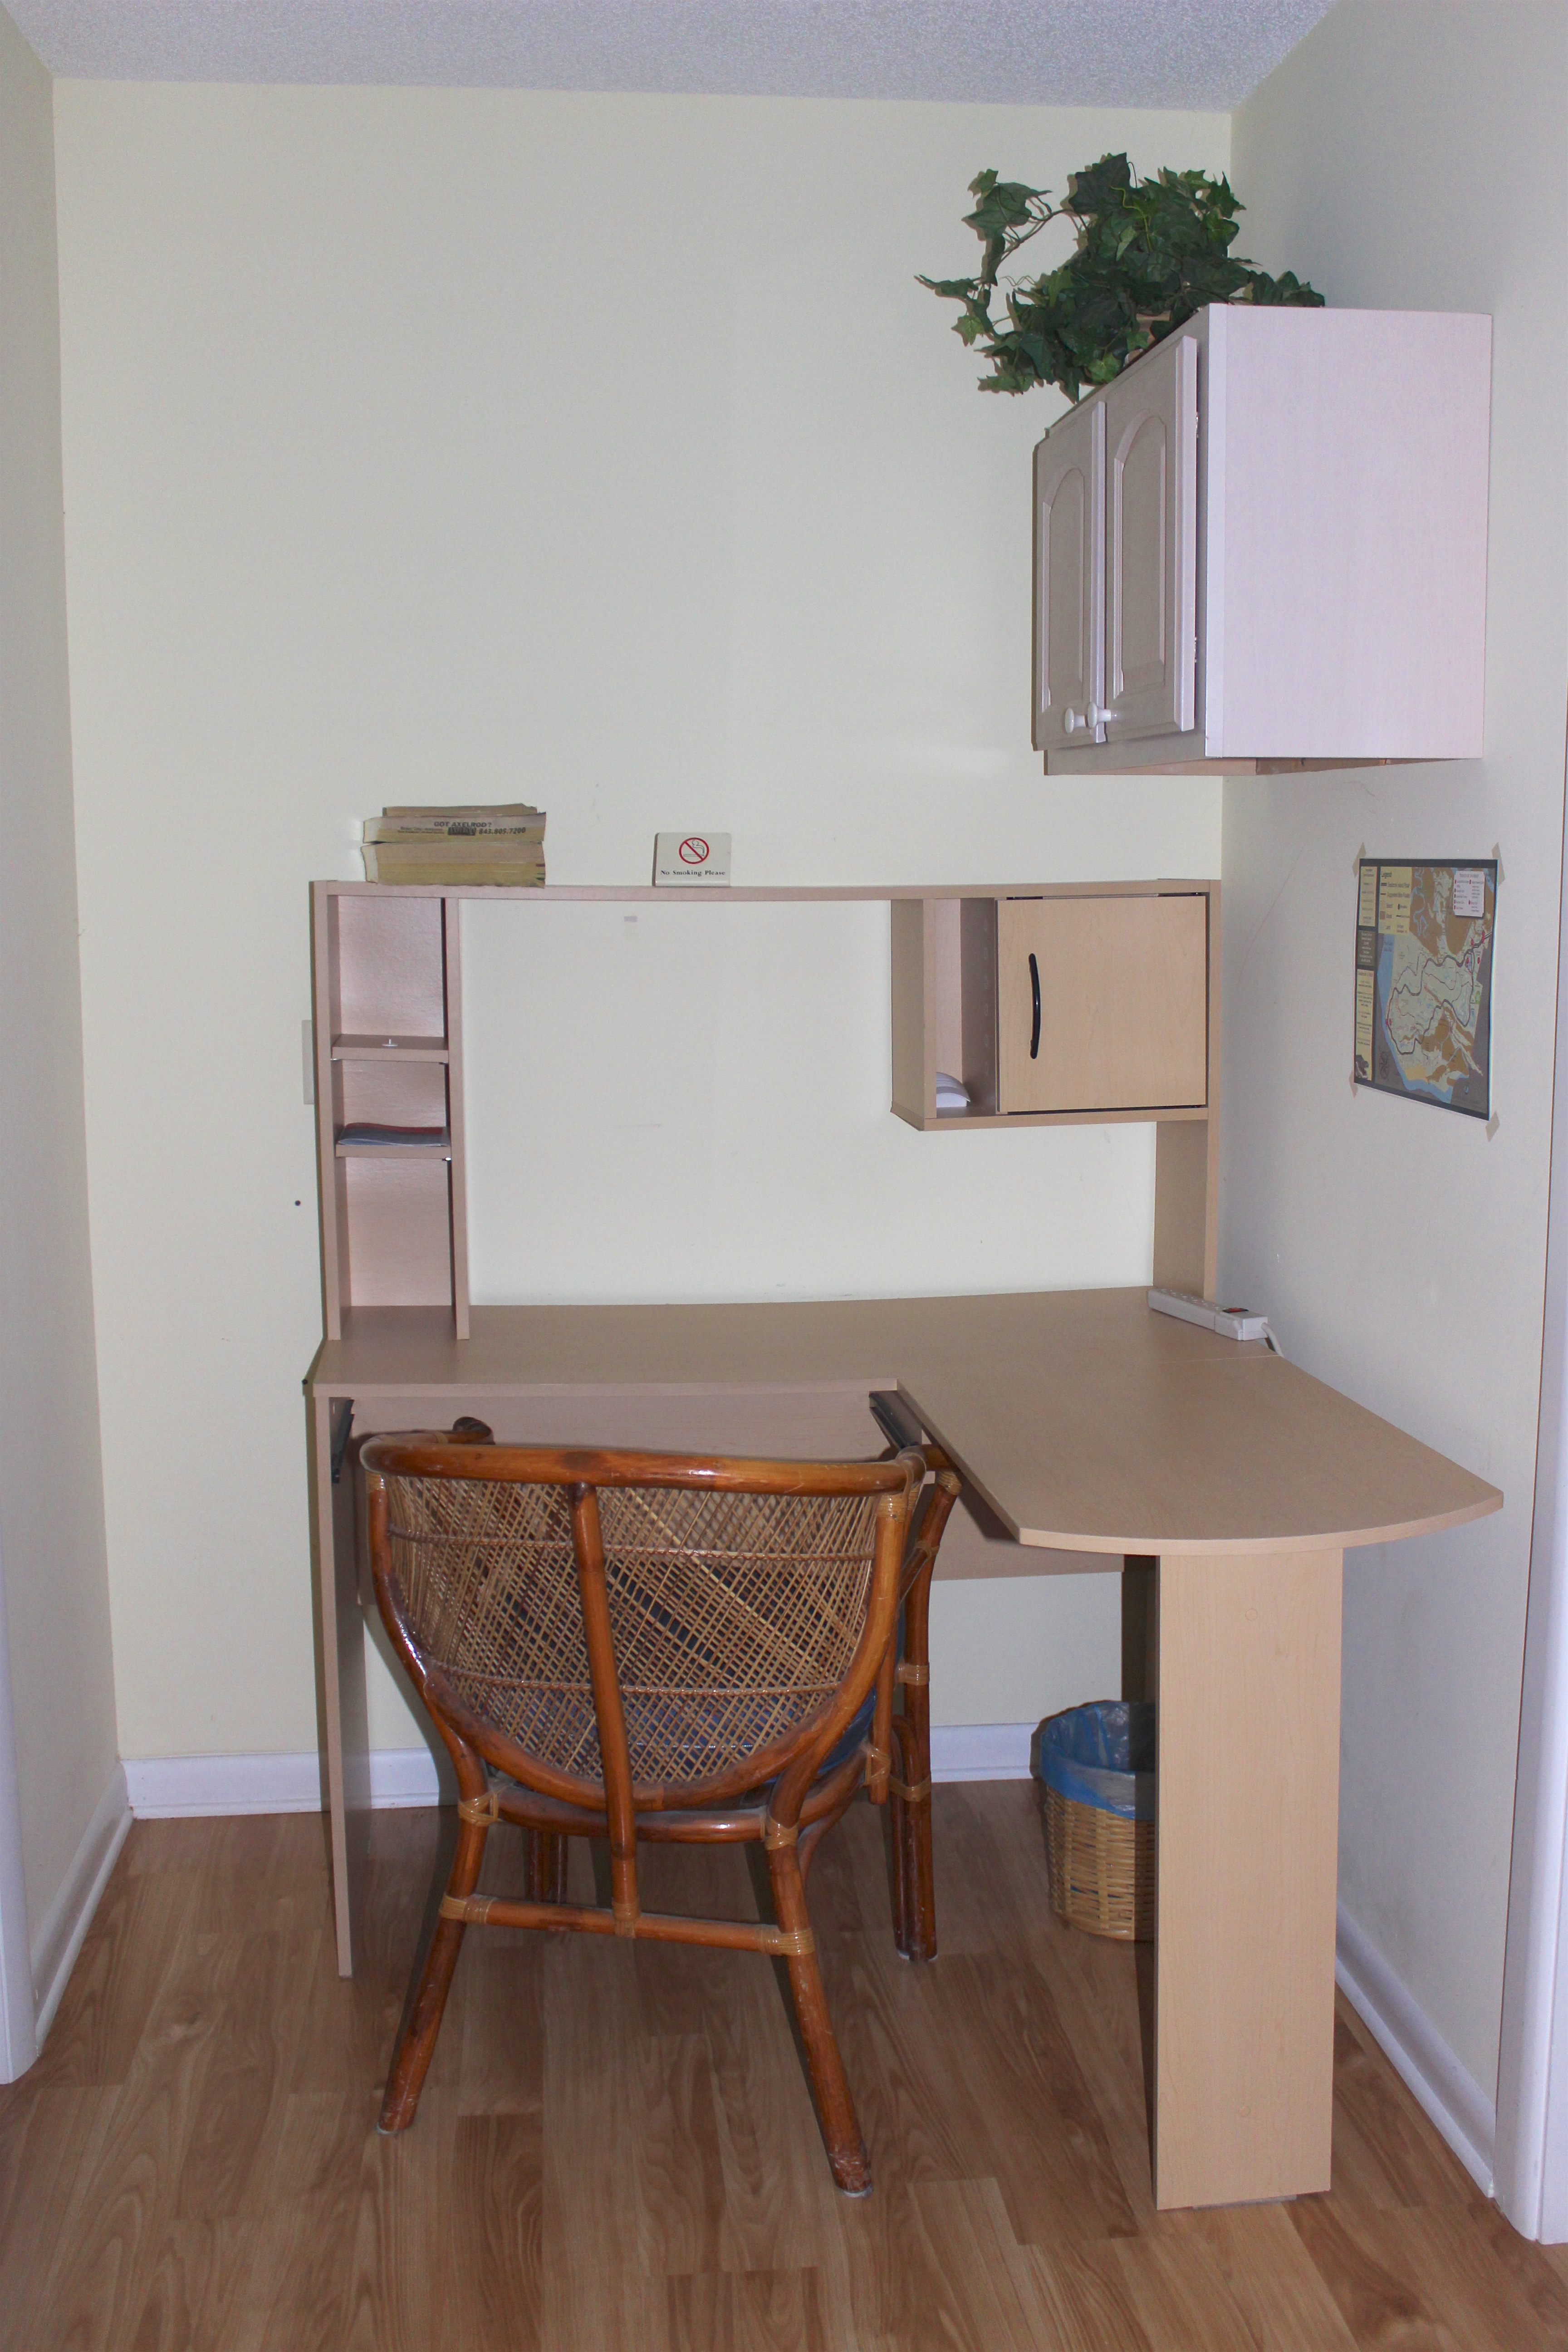 If you need to work while visiting, there is a computer desk in the hall area.